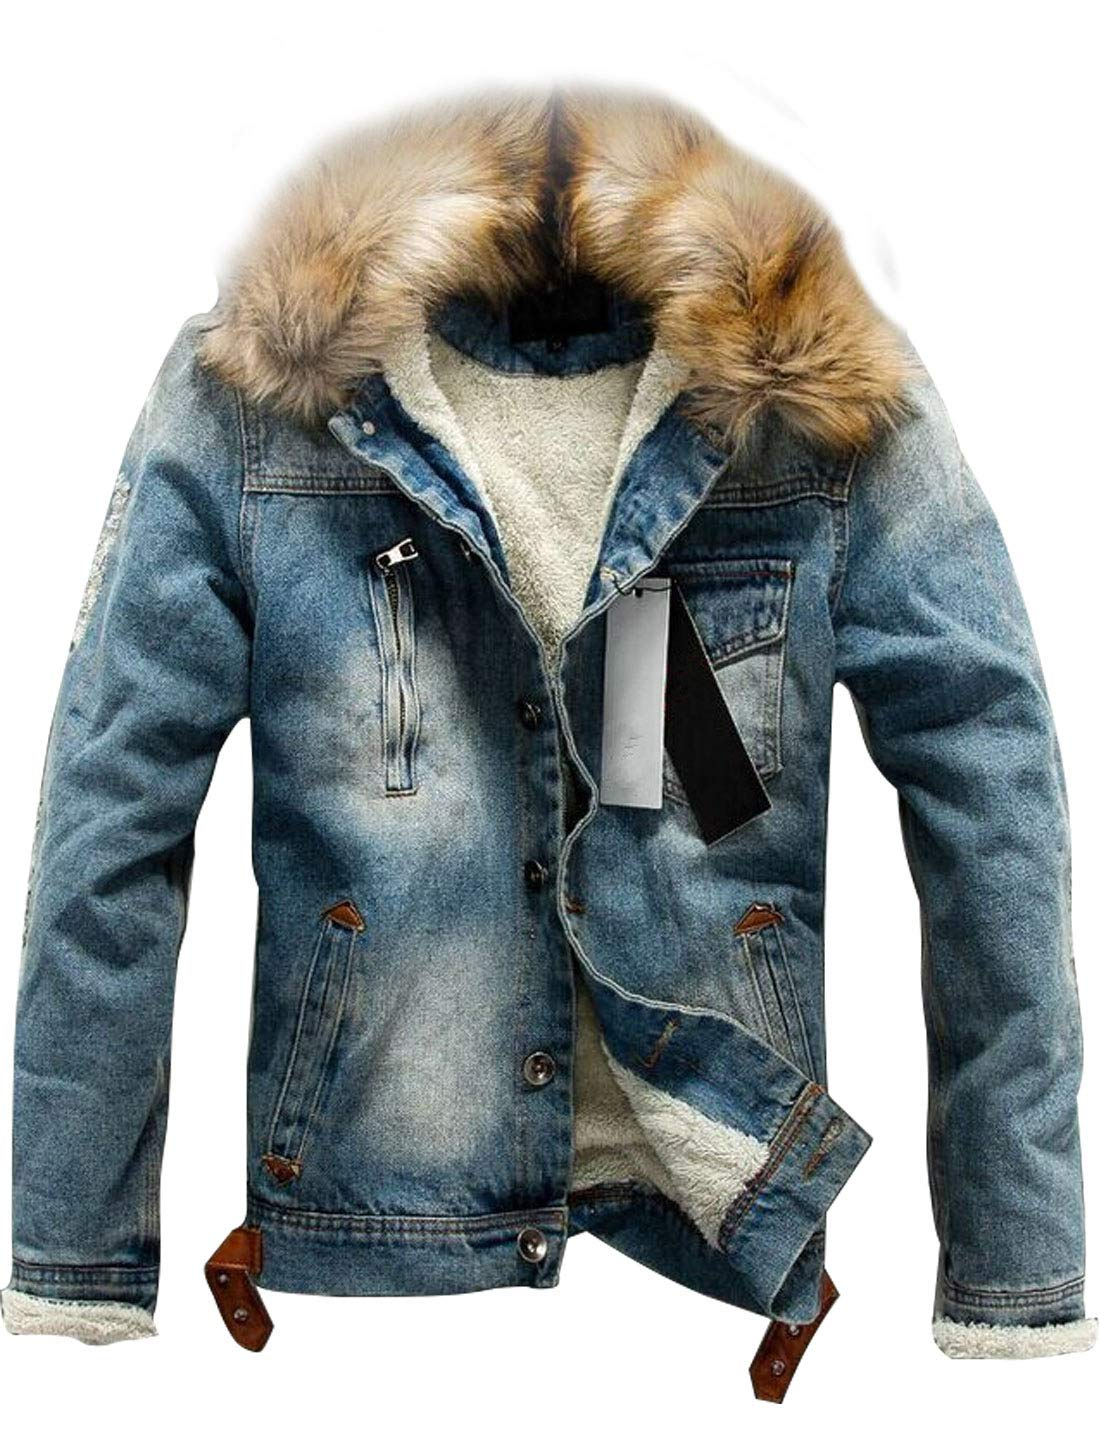 Omoone Men's Button Up Sherpa Fleece Lined Denim Jacket with Faux Fur Collar (Blue, M) by Omoone